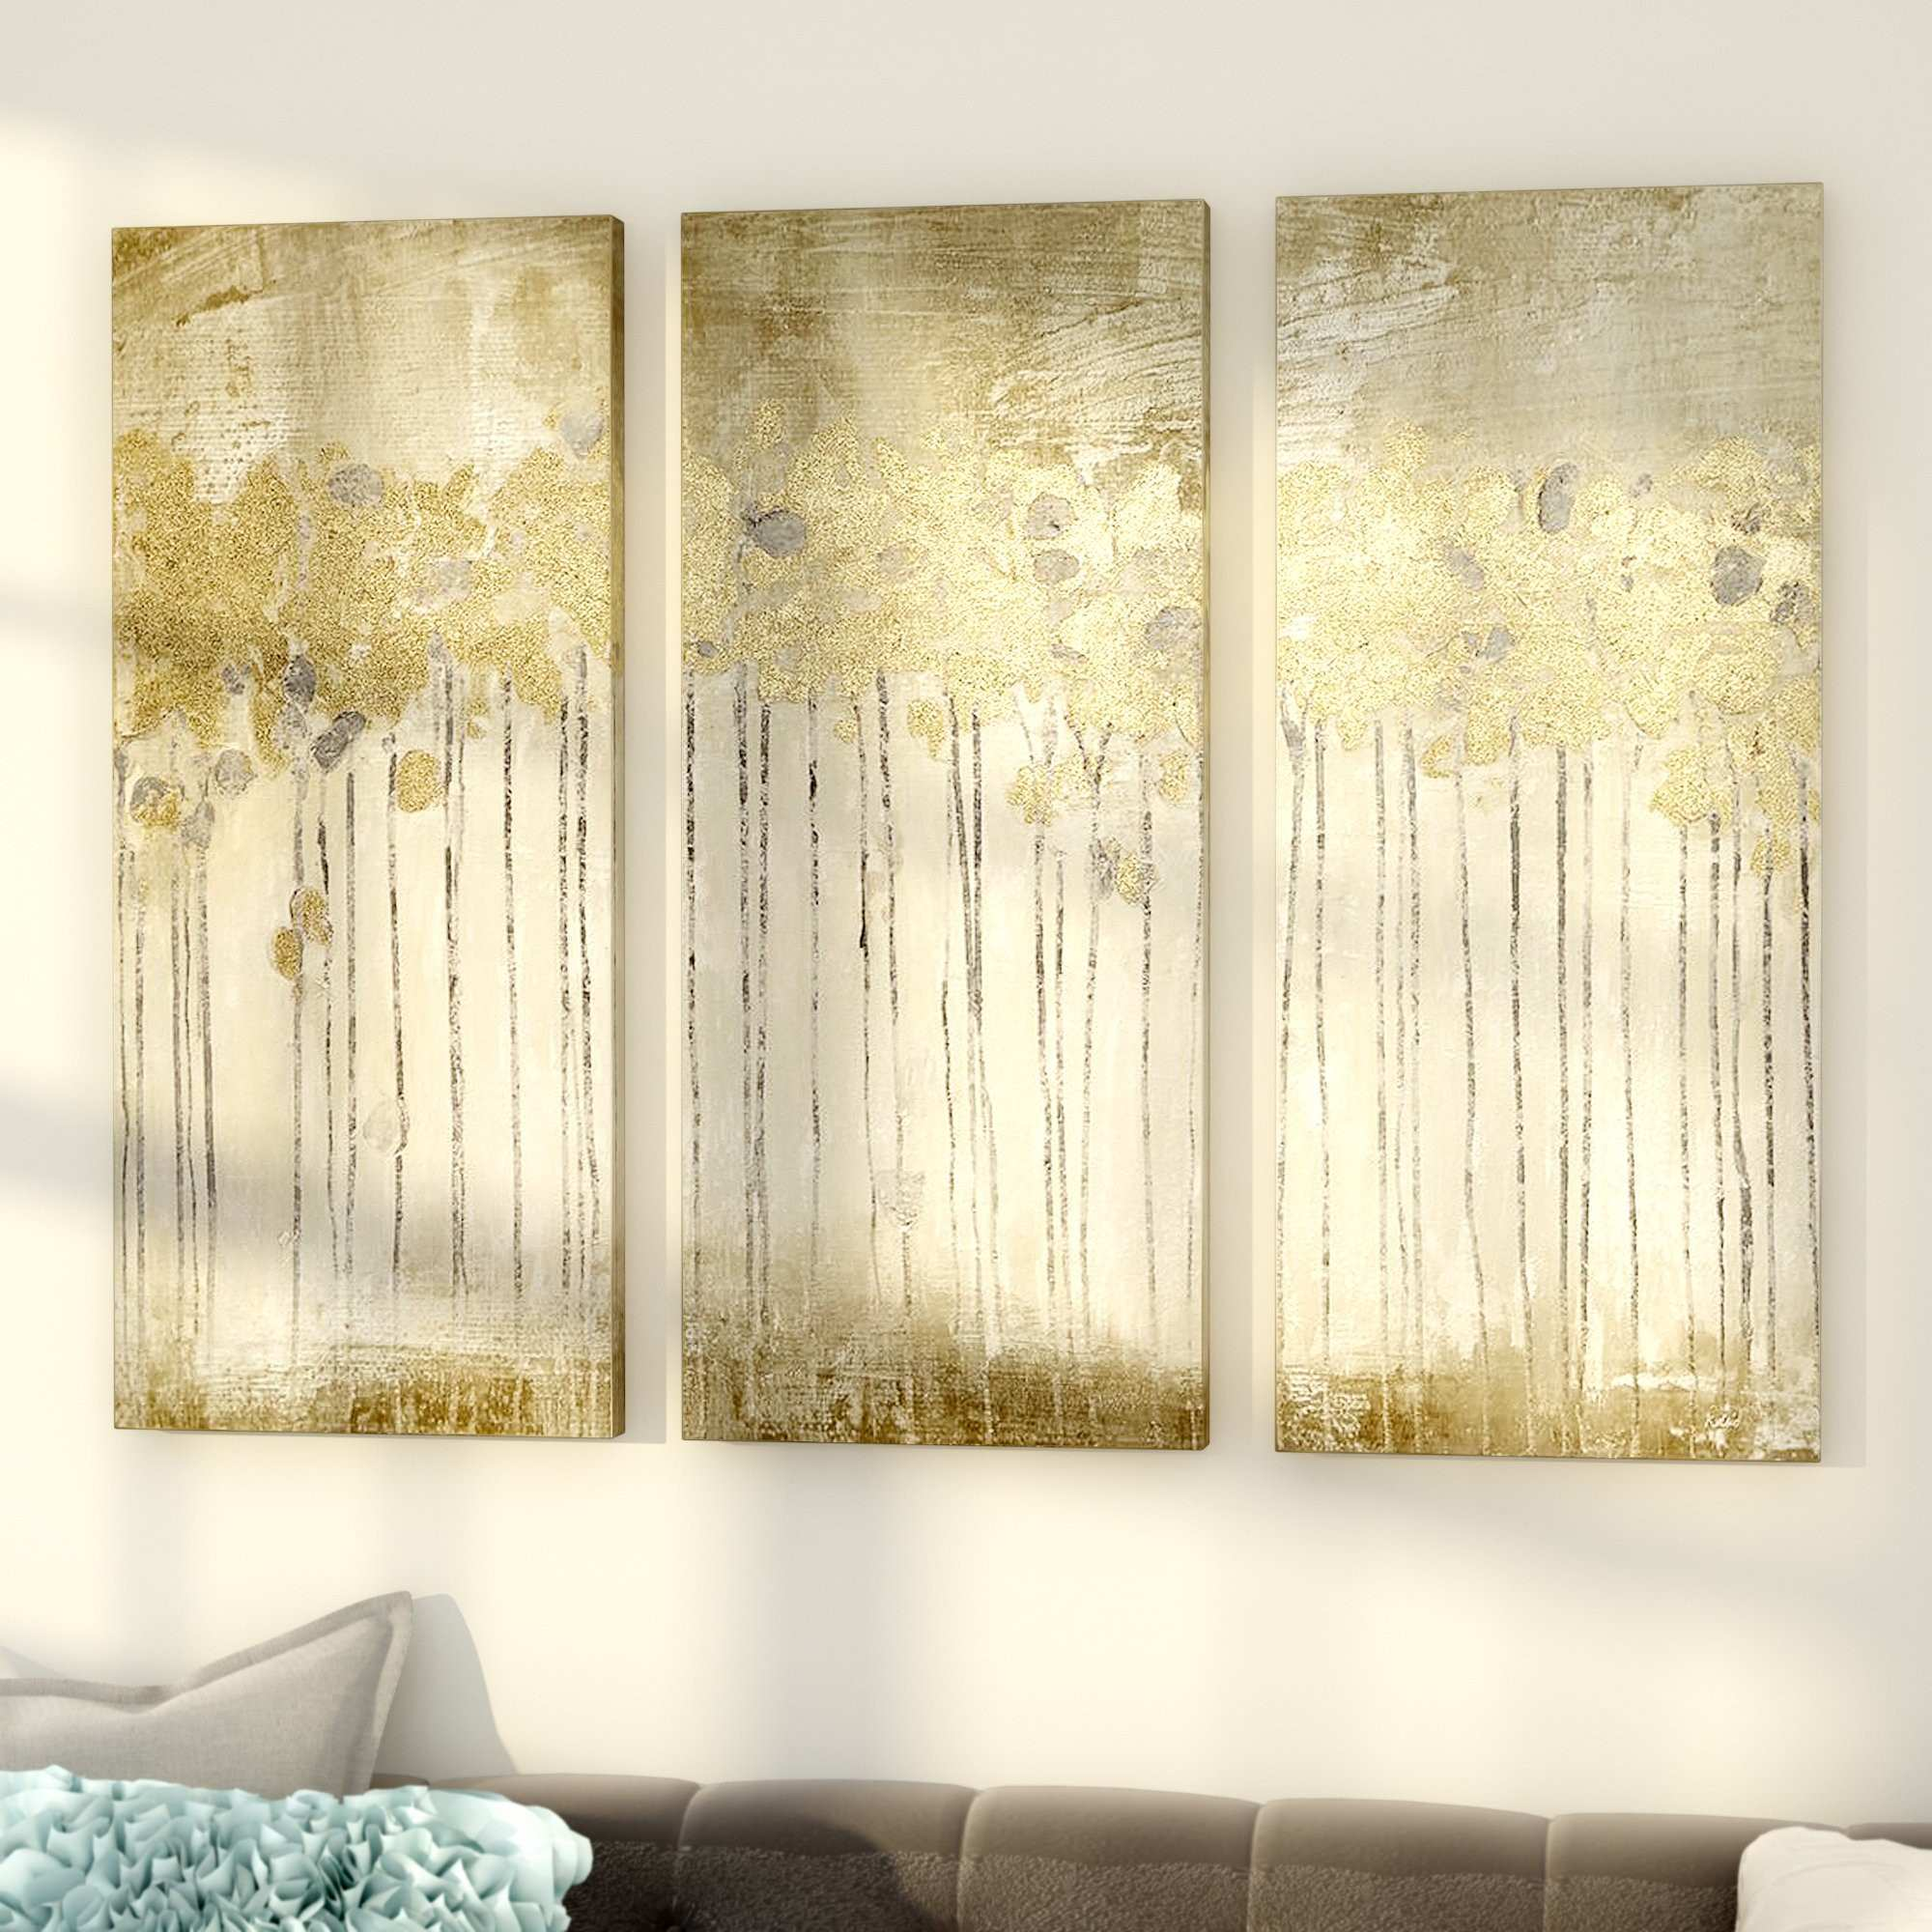 Dorable 3 Piece Metal Wall Art Collection Wall Art Collections